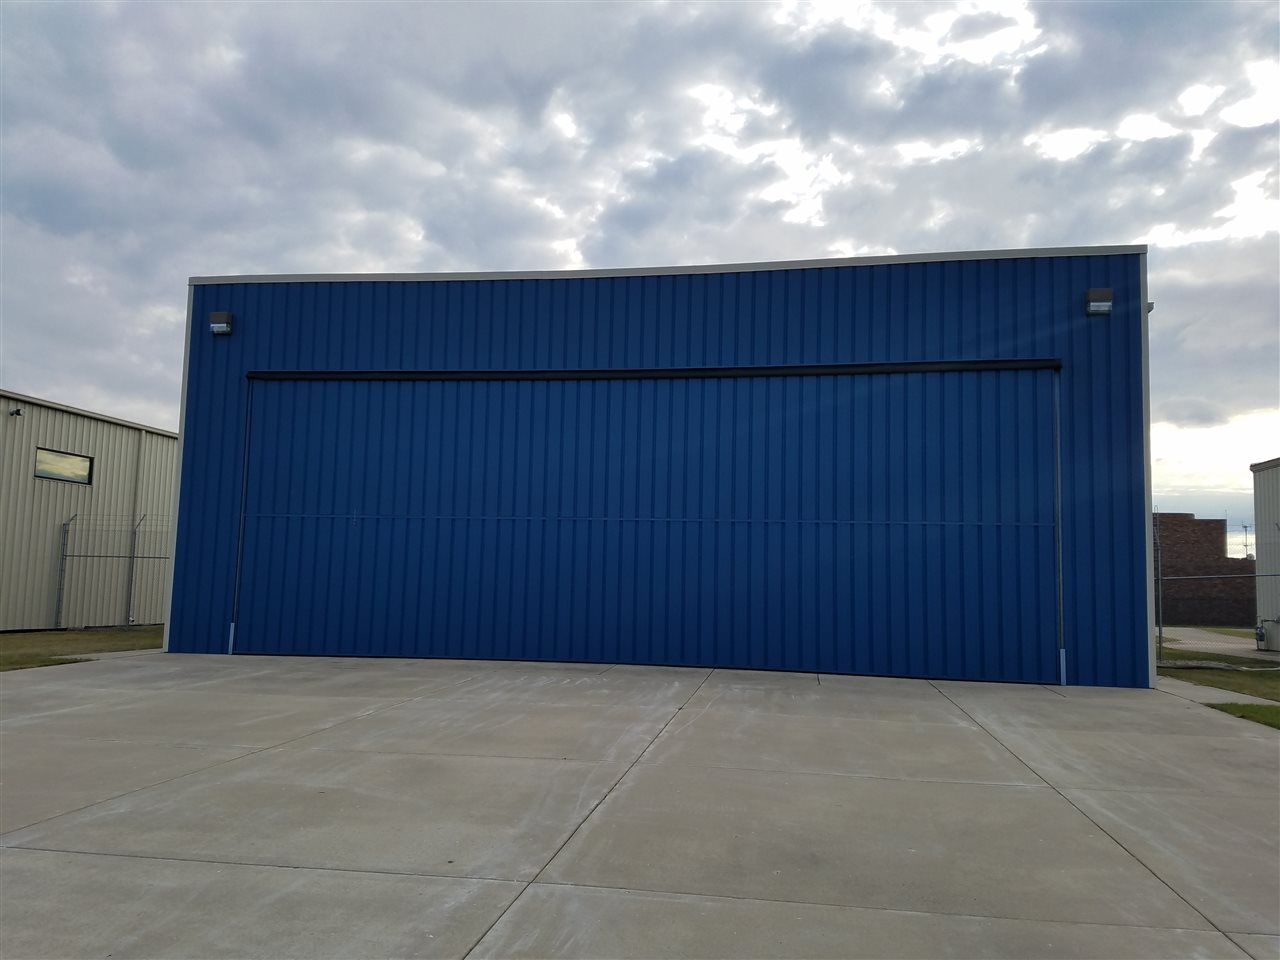 50 ft wide bi-fold hangar door with remote control. Apron is heated for snow melting (controllable).